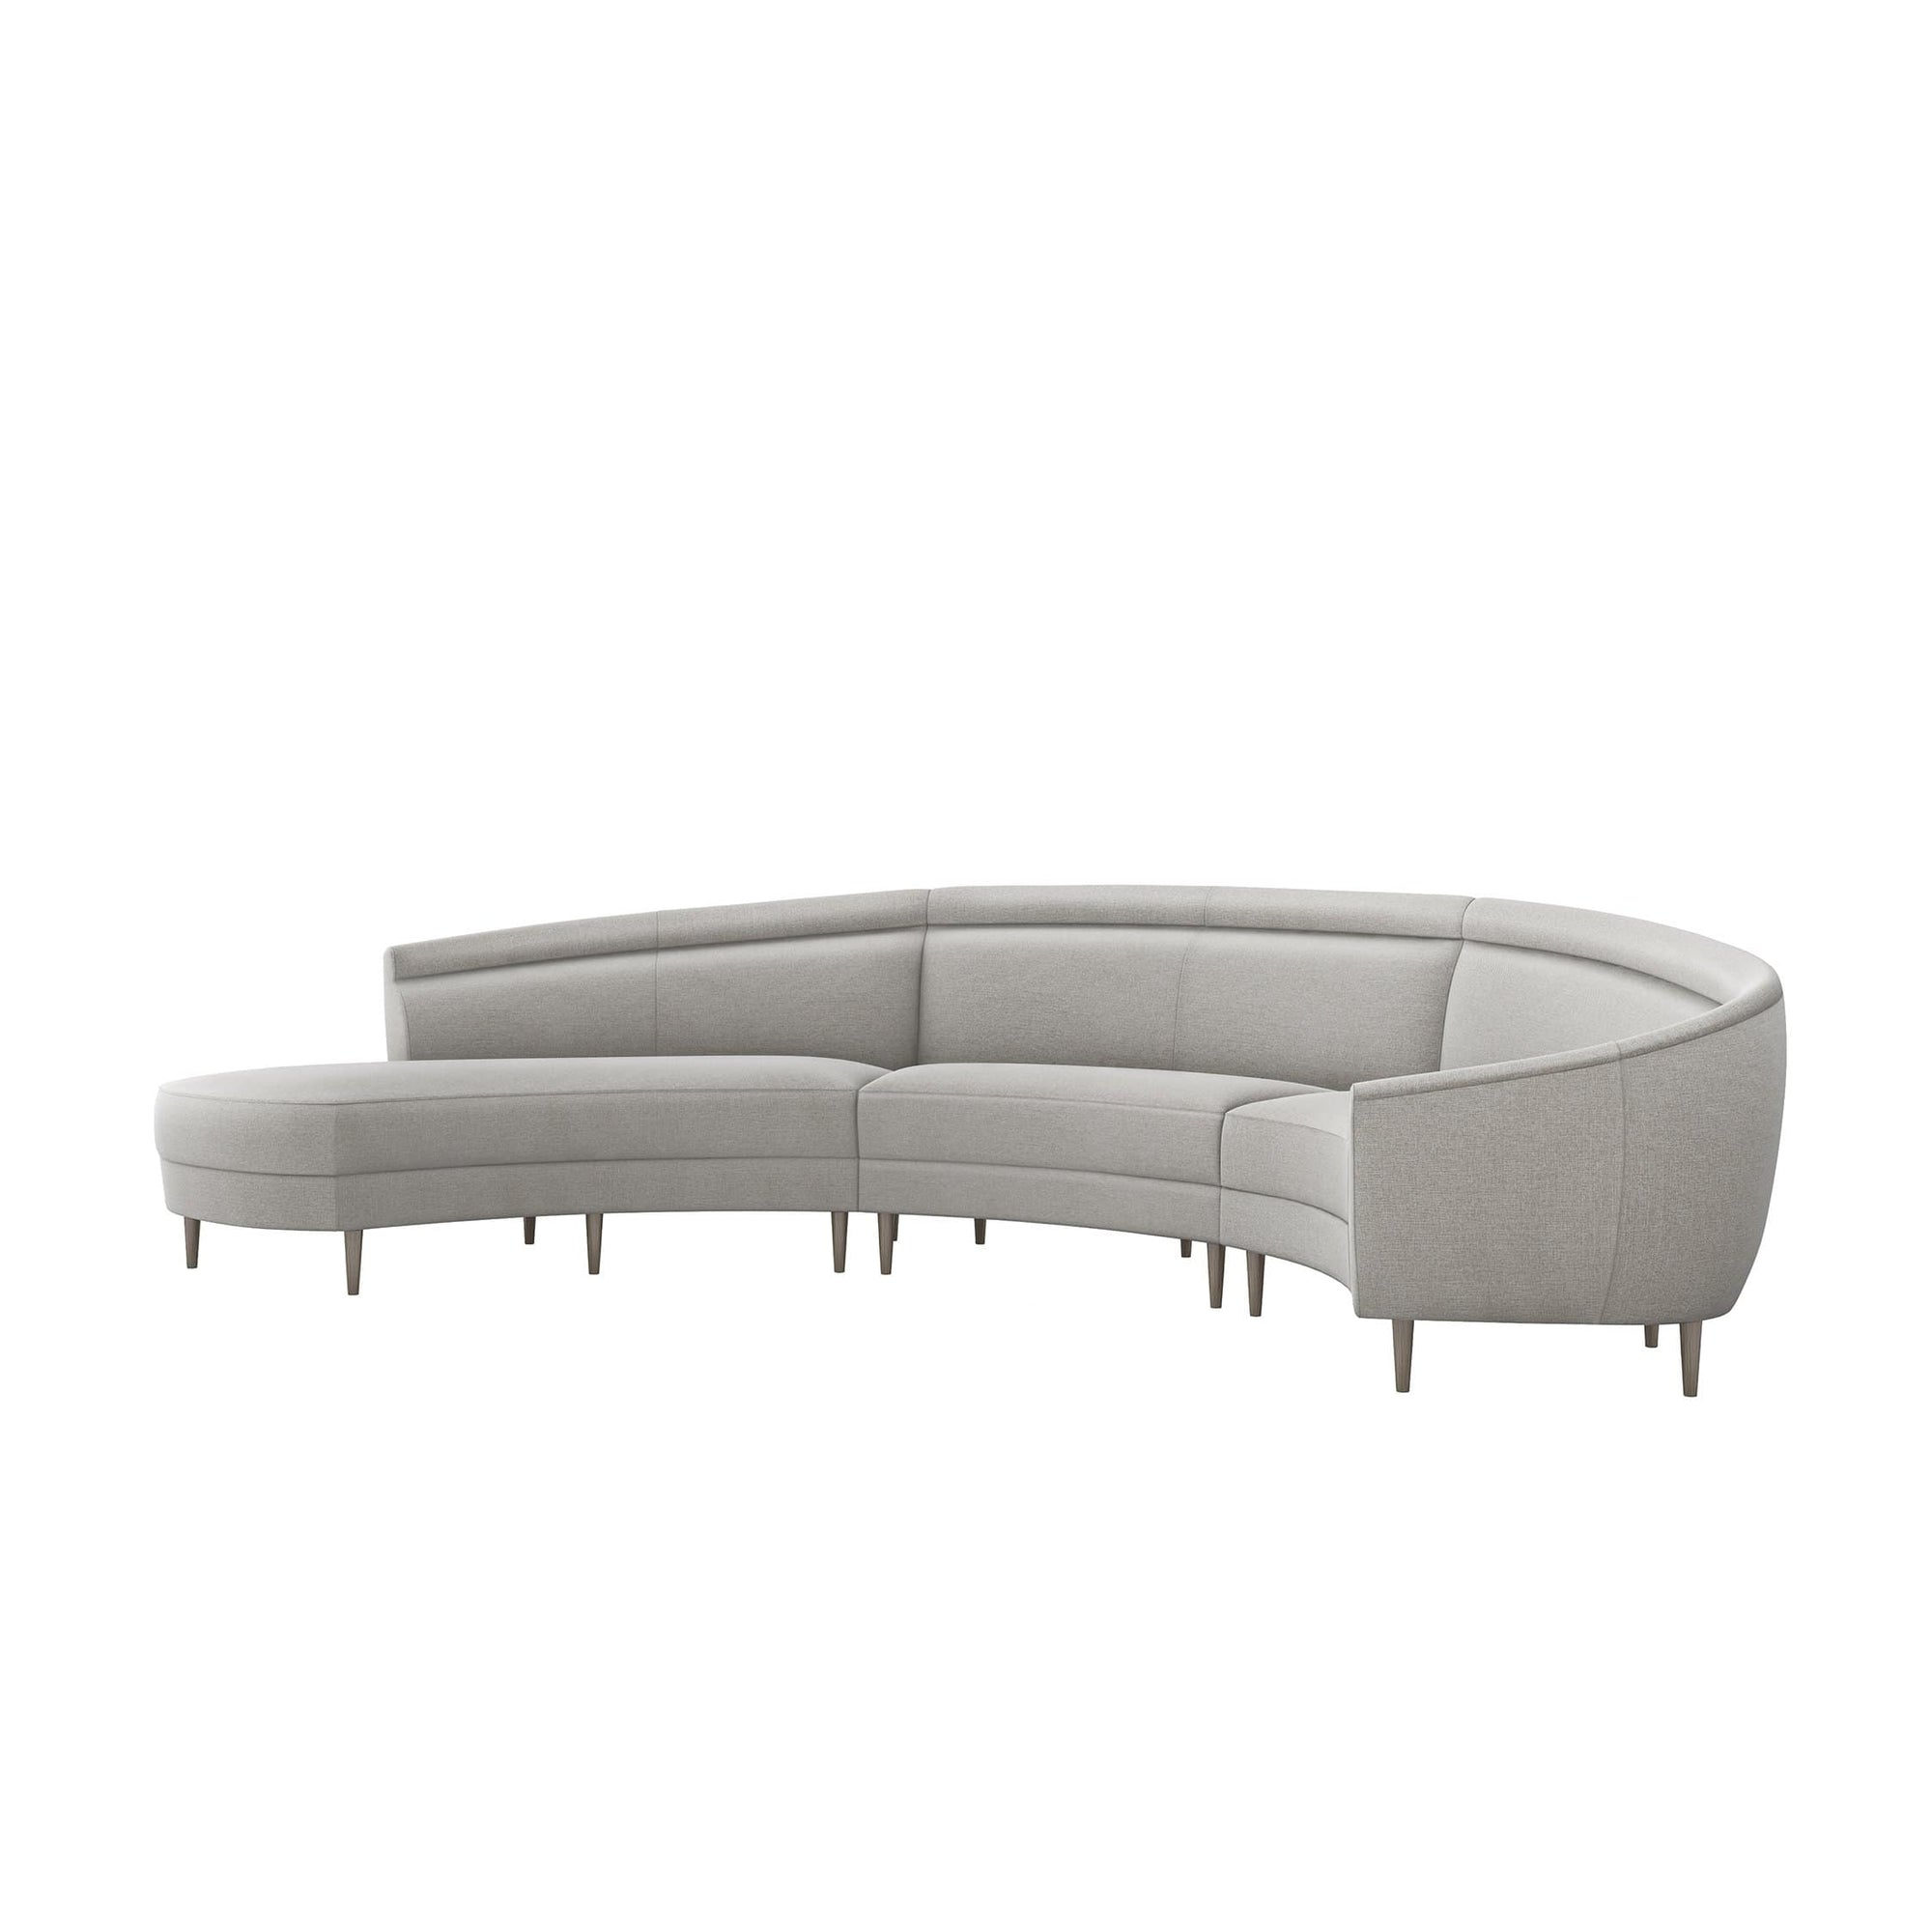 Interlude Home Interlude Home Capri Left Chaise 3 Piece Sectional - Light Gray 199013-6